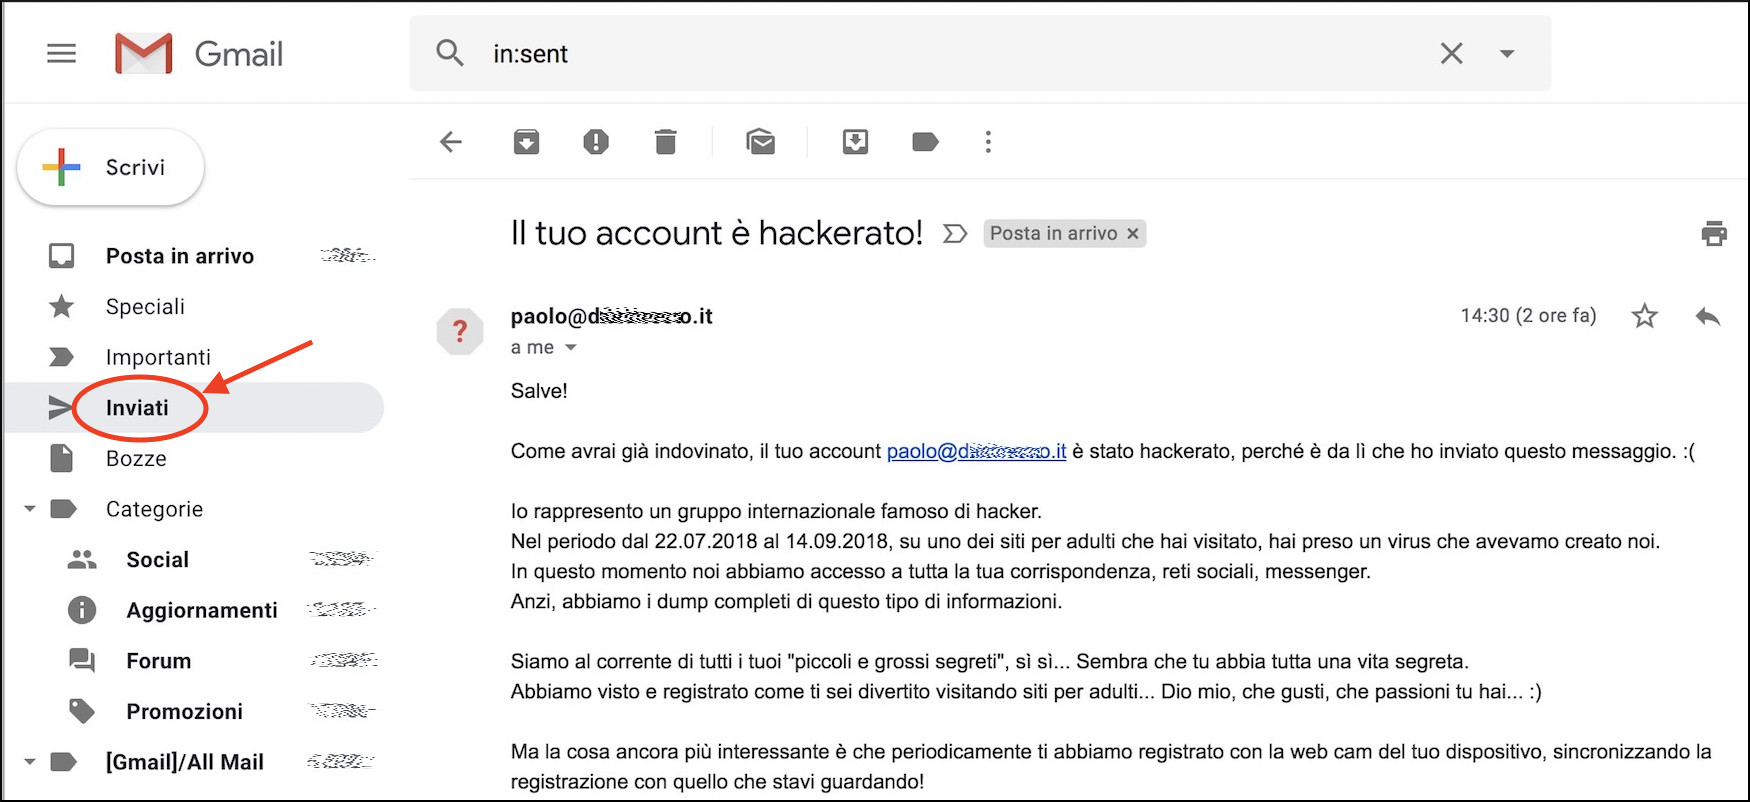 Un ricatto finge l`hacking della mail e il furto password, ma è una truffa: cosa fare